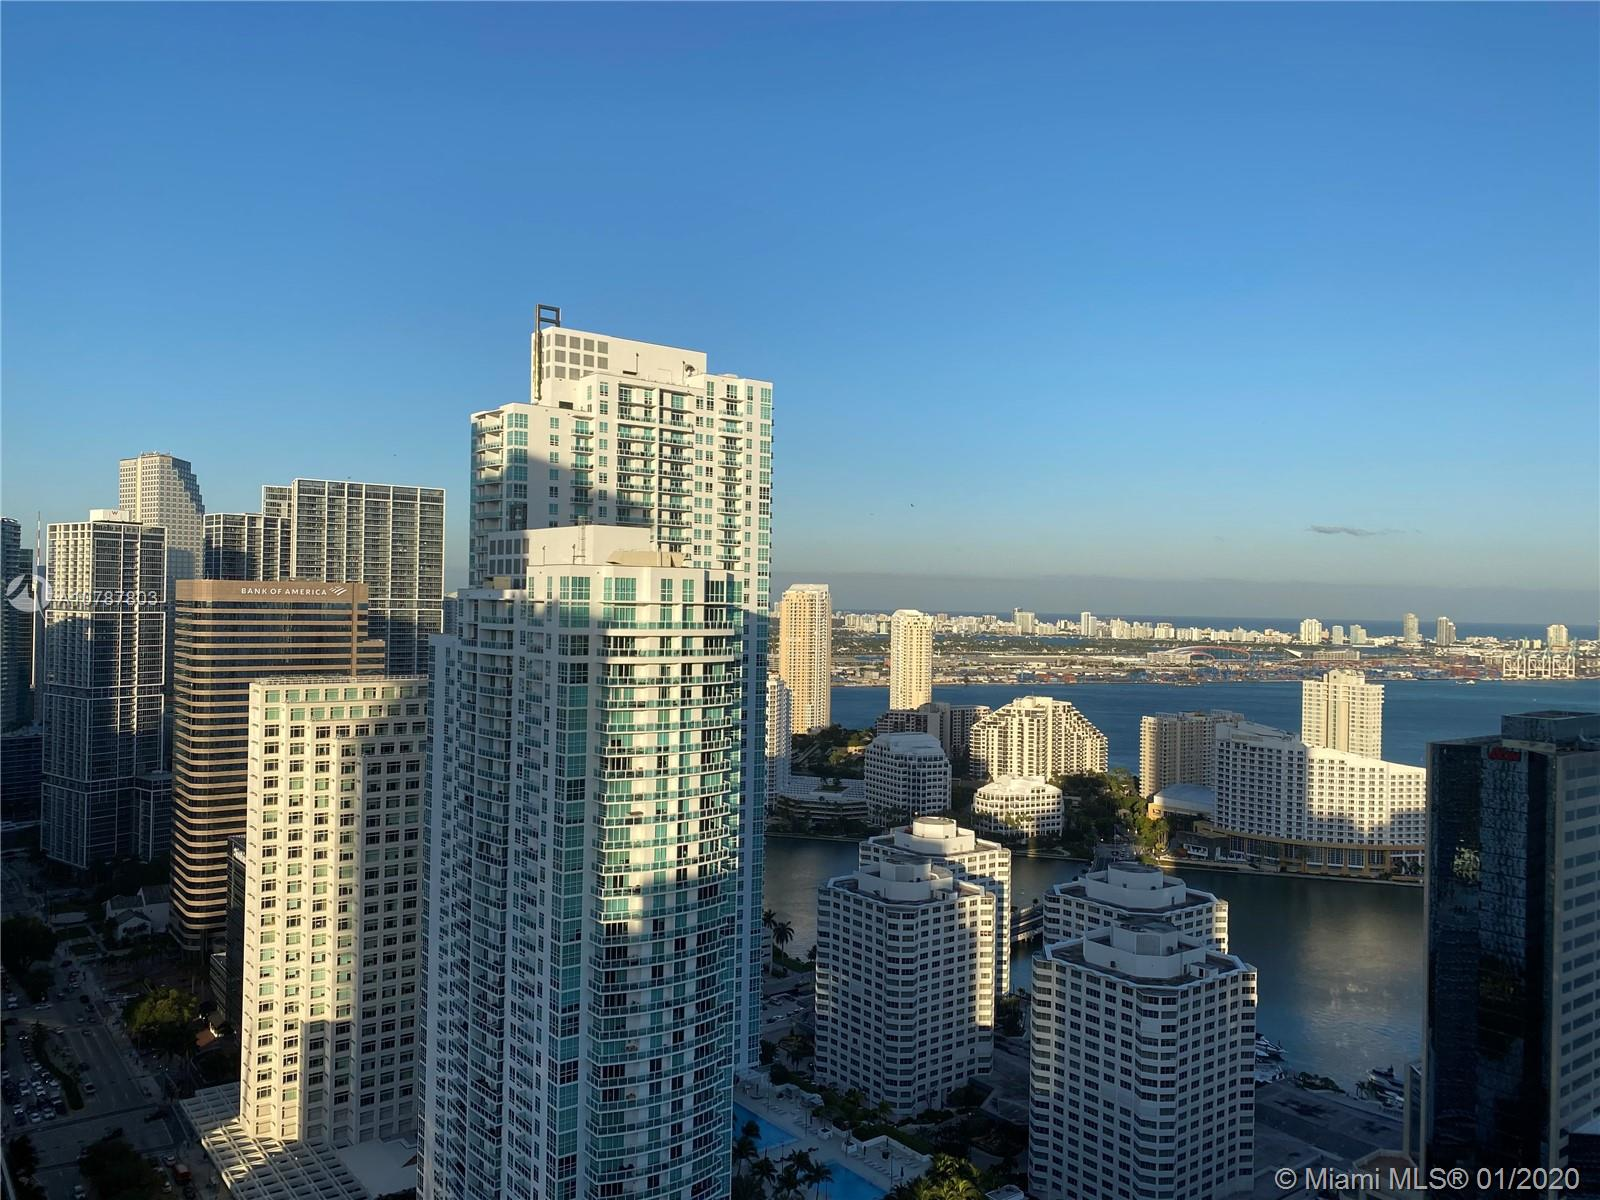 Own this amazing unit at exclusive 1060 Brickell !! This spacious apartment with 2 bedroom, plus Den and 3 full baths,  offers great spaces for the entire family.  Enjoy the best skyline and bay views from the 42nd floor, siting in the terrace and been amazed by the sunsets and sunrises . State of the art   Italian kitchen cabinets, quartz counter top, stainless steel appliances. Amenities include pools, Jacuzzis, BBQ area, full gym, complete spa, children pay area, 24-h concierge and valet service. Walking distance to the finest restaurants, shops and malls.